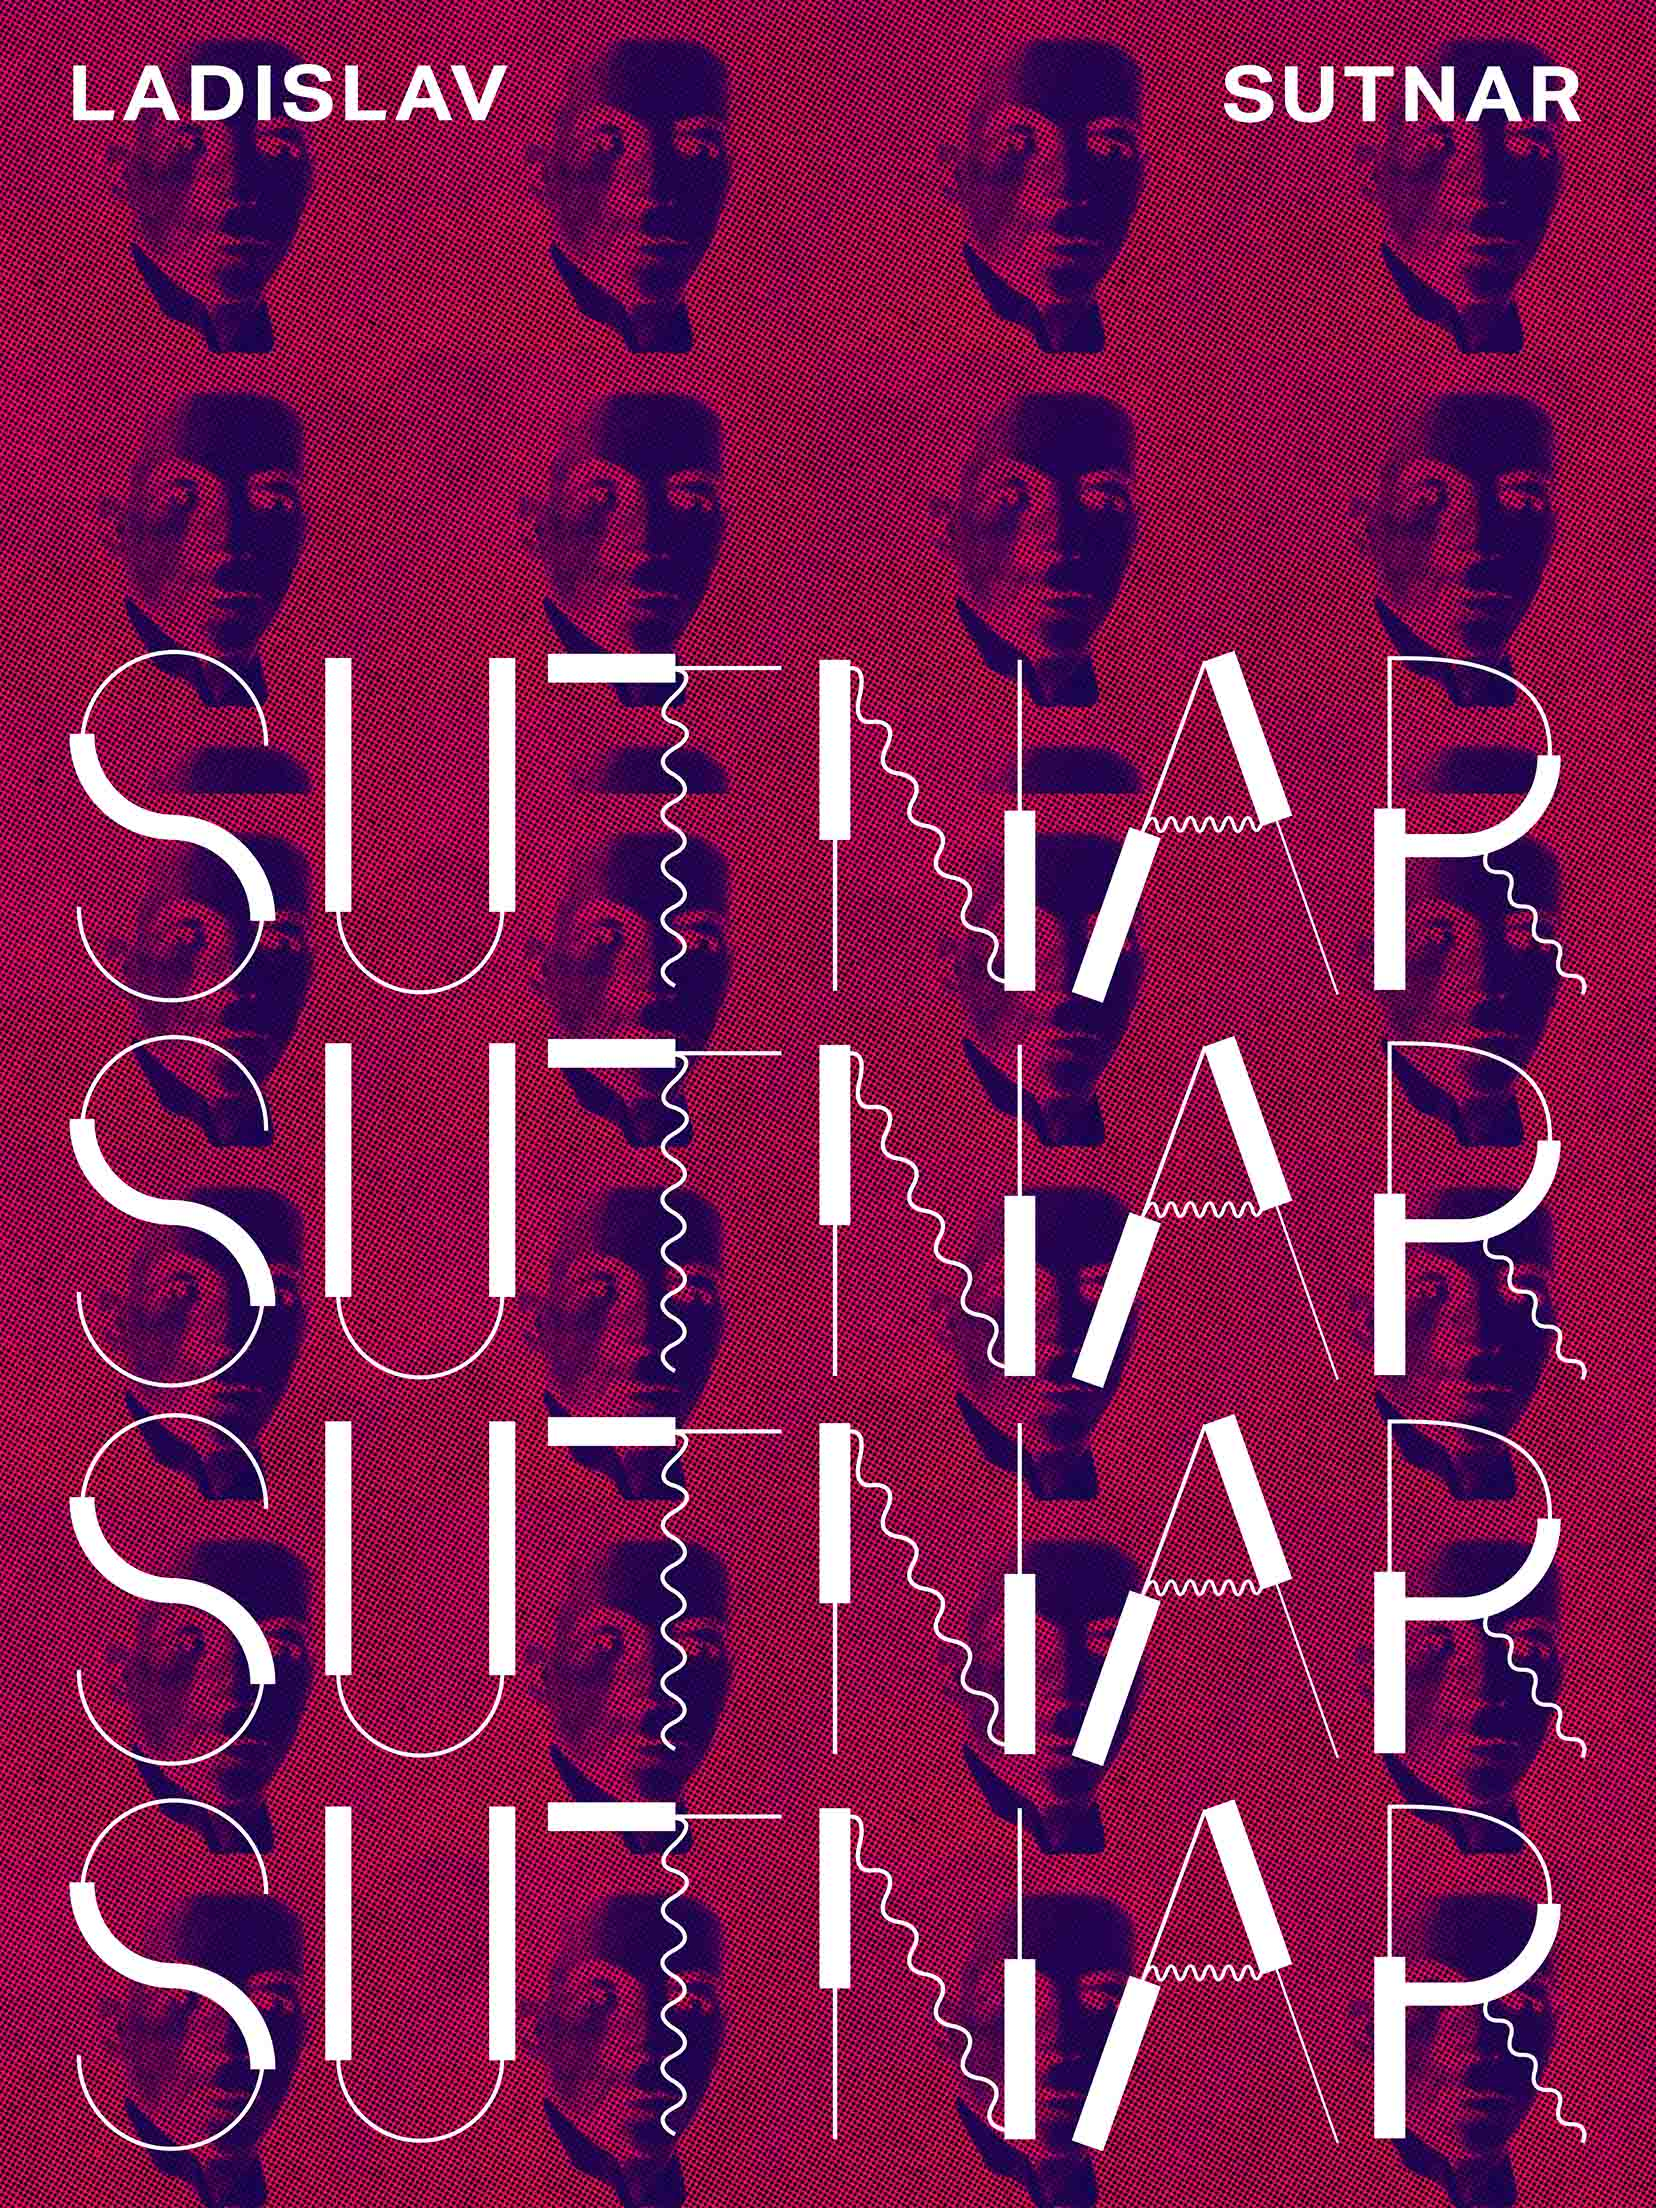 Sutnzra typeface on a poster